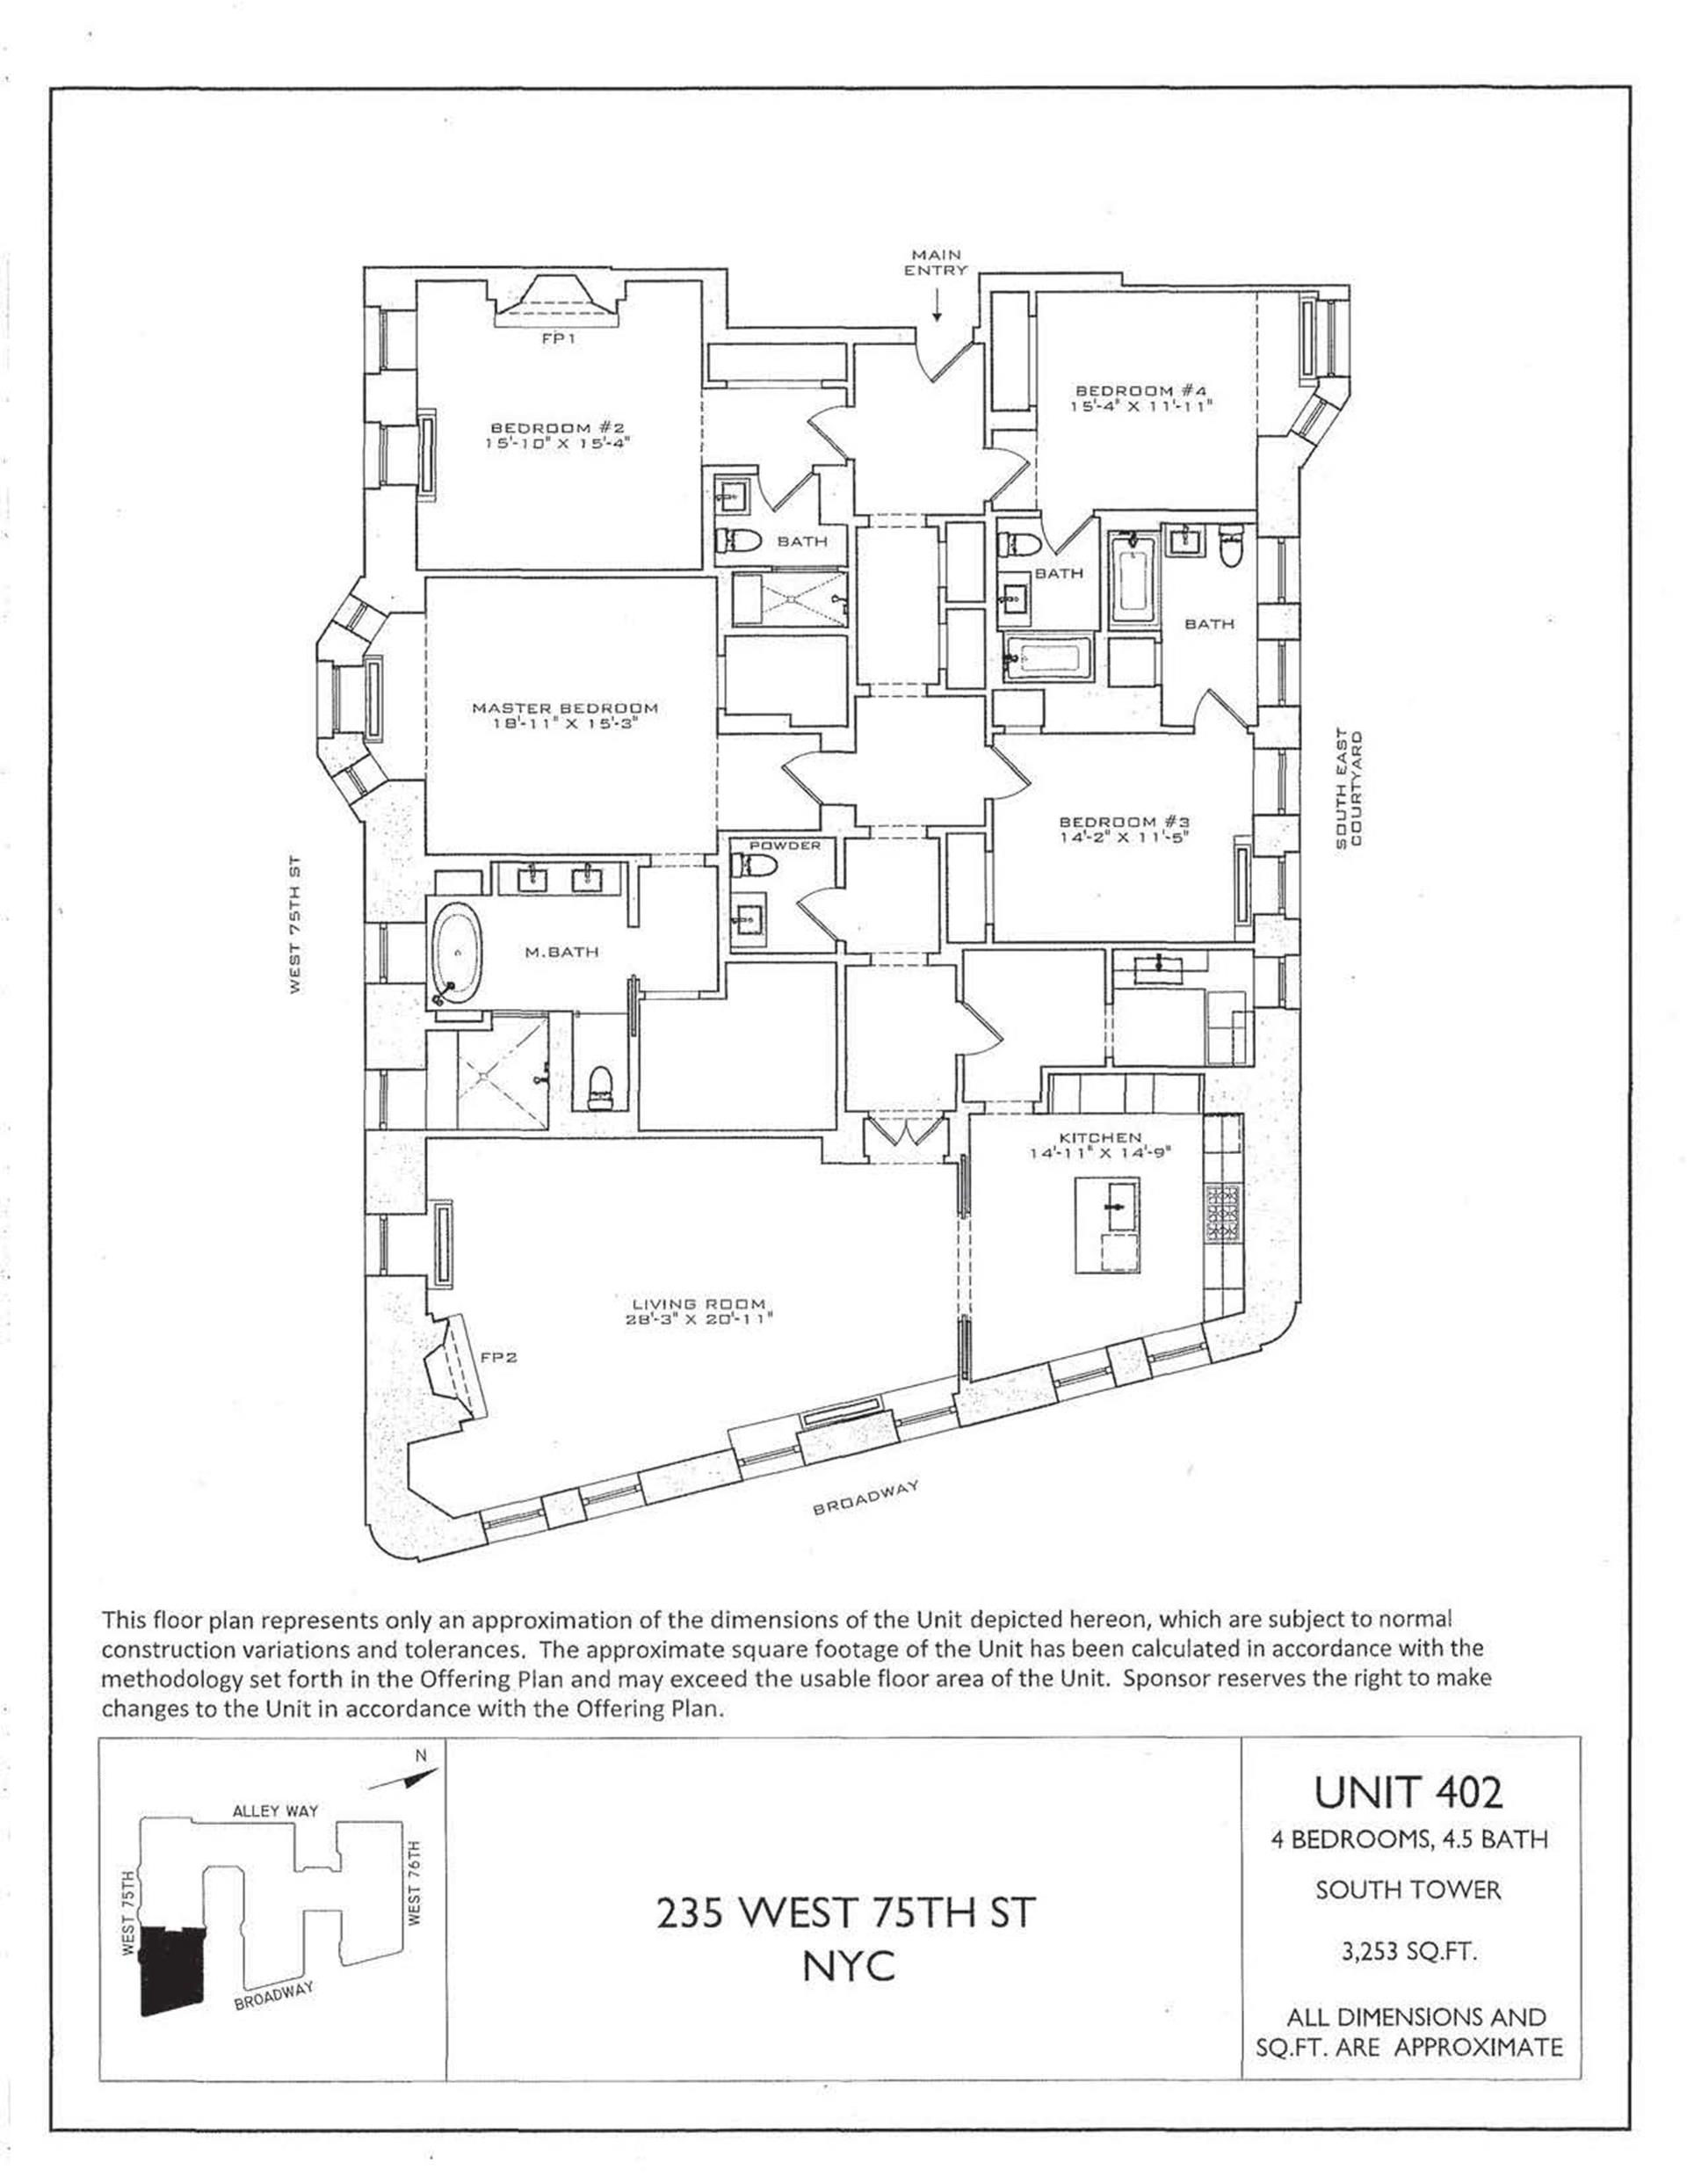 Floor plan of The Astor, 235 West 75th St, 402 - Upper West Side, New York